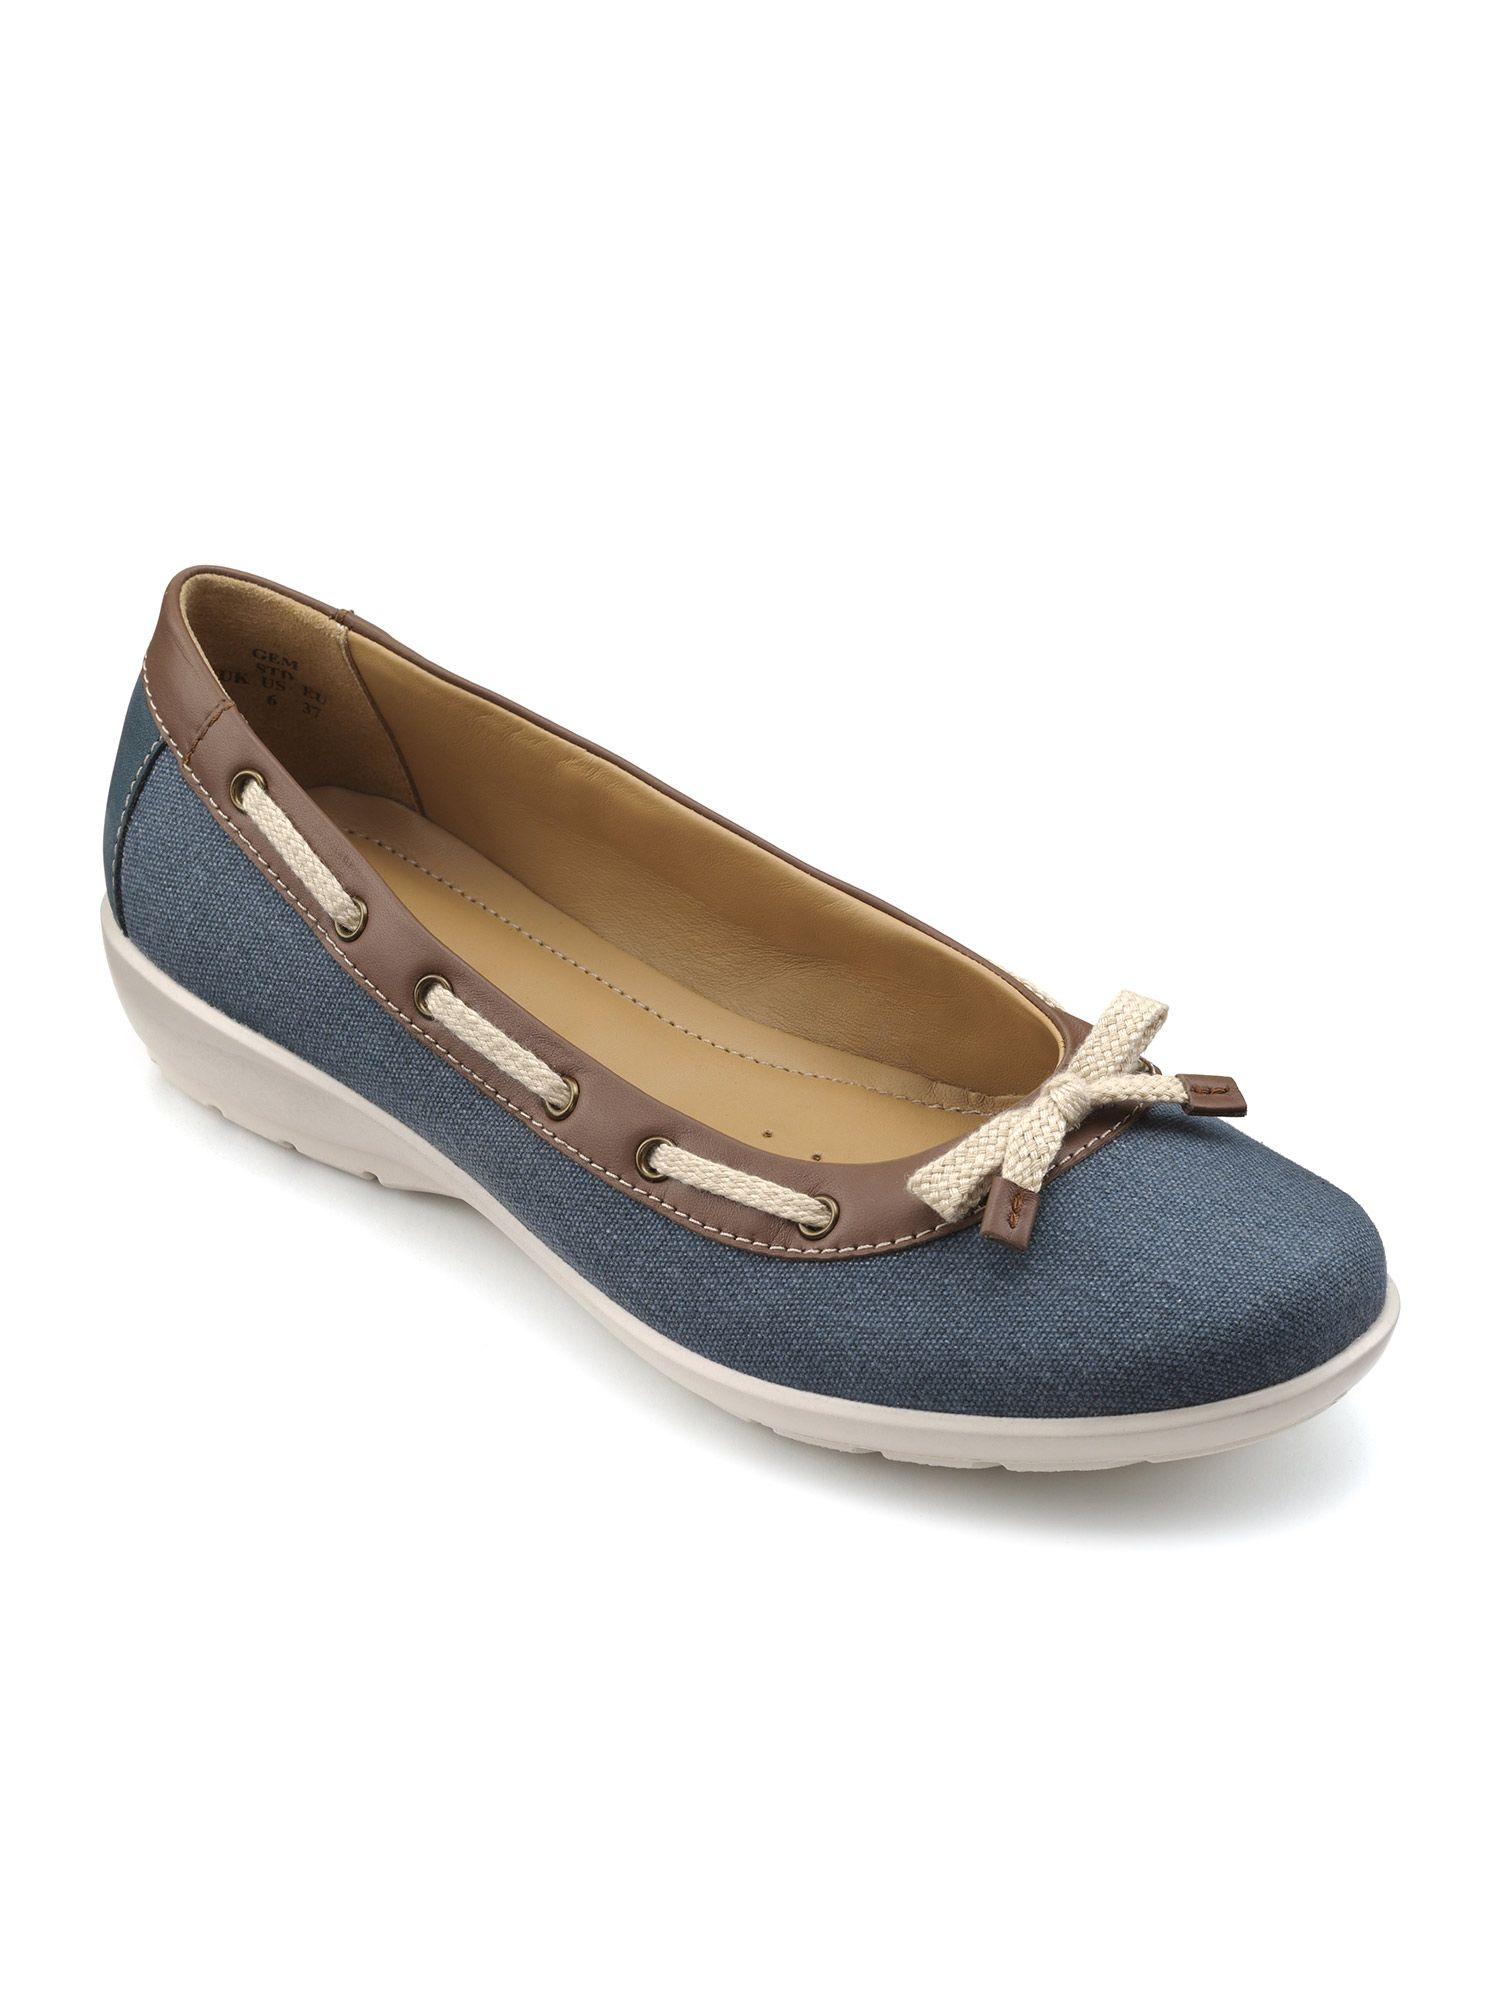 Hotter Gem Ladies Ballerina Style Shoe, Blue